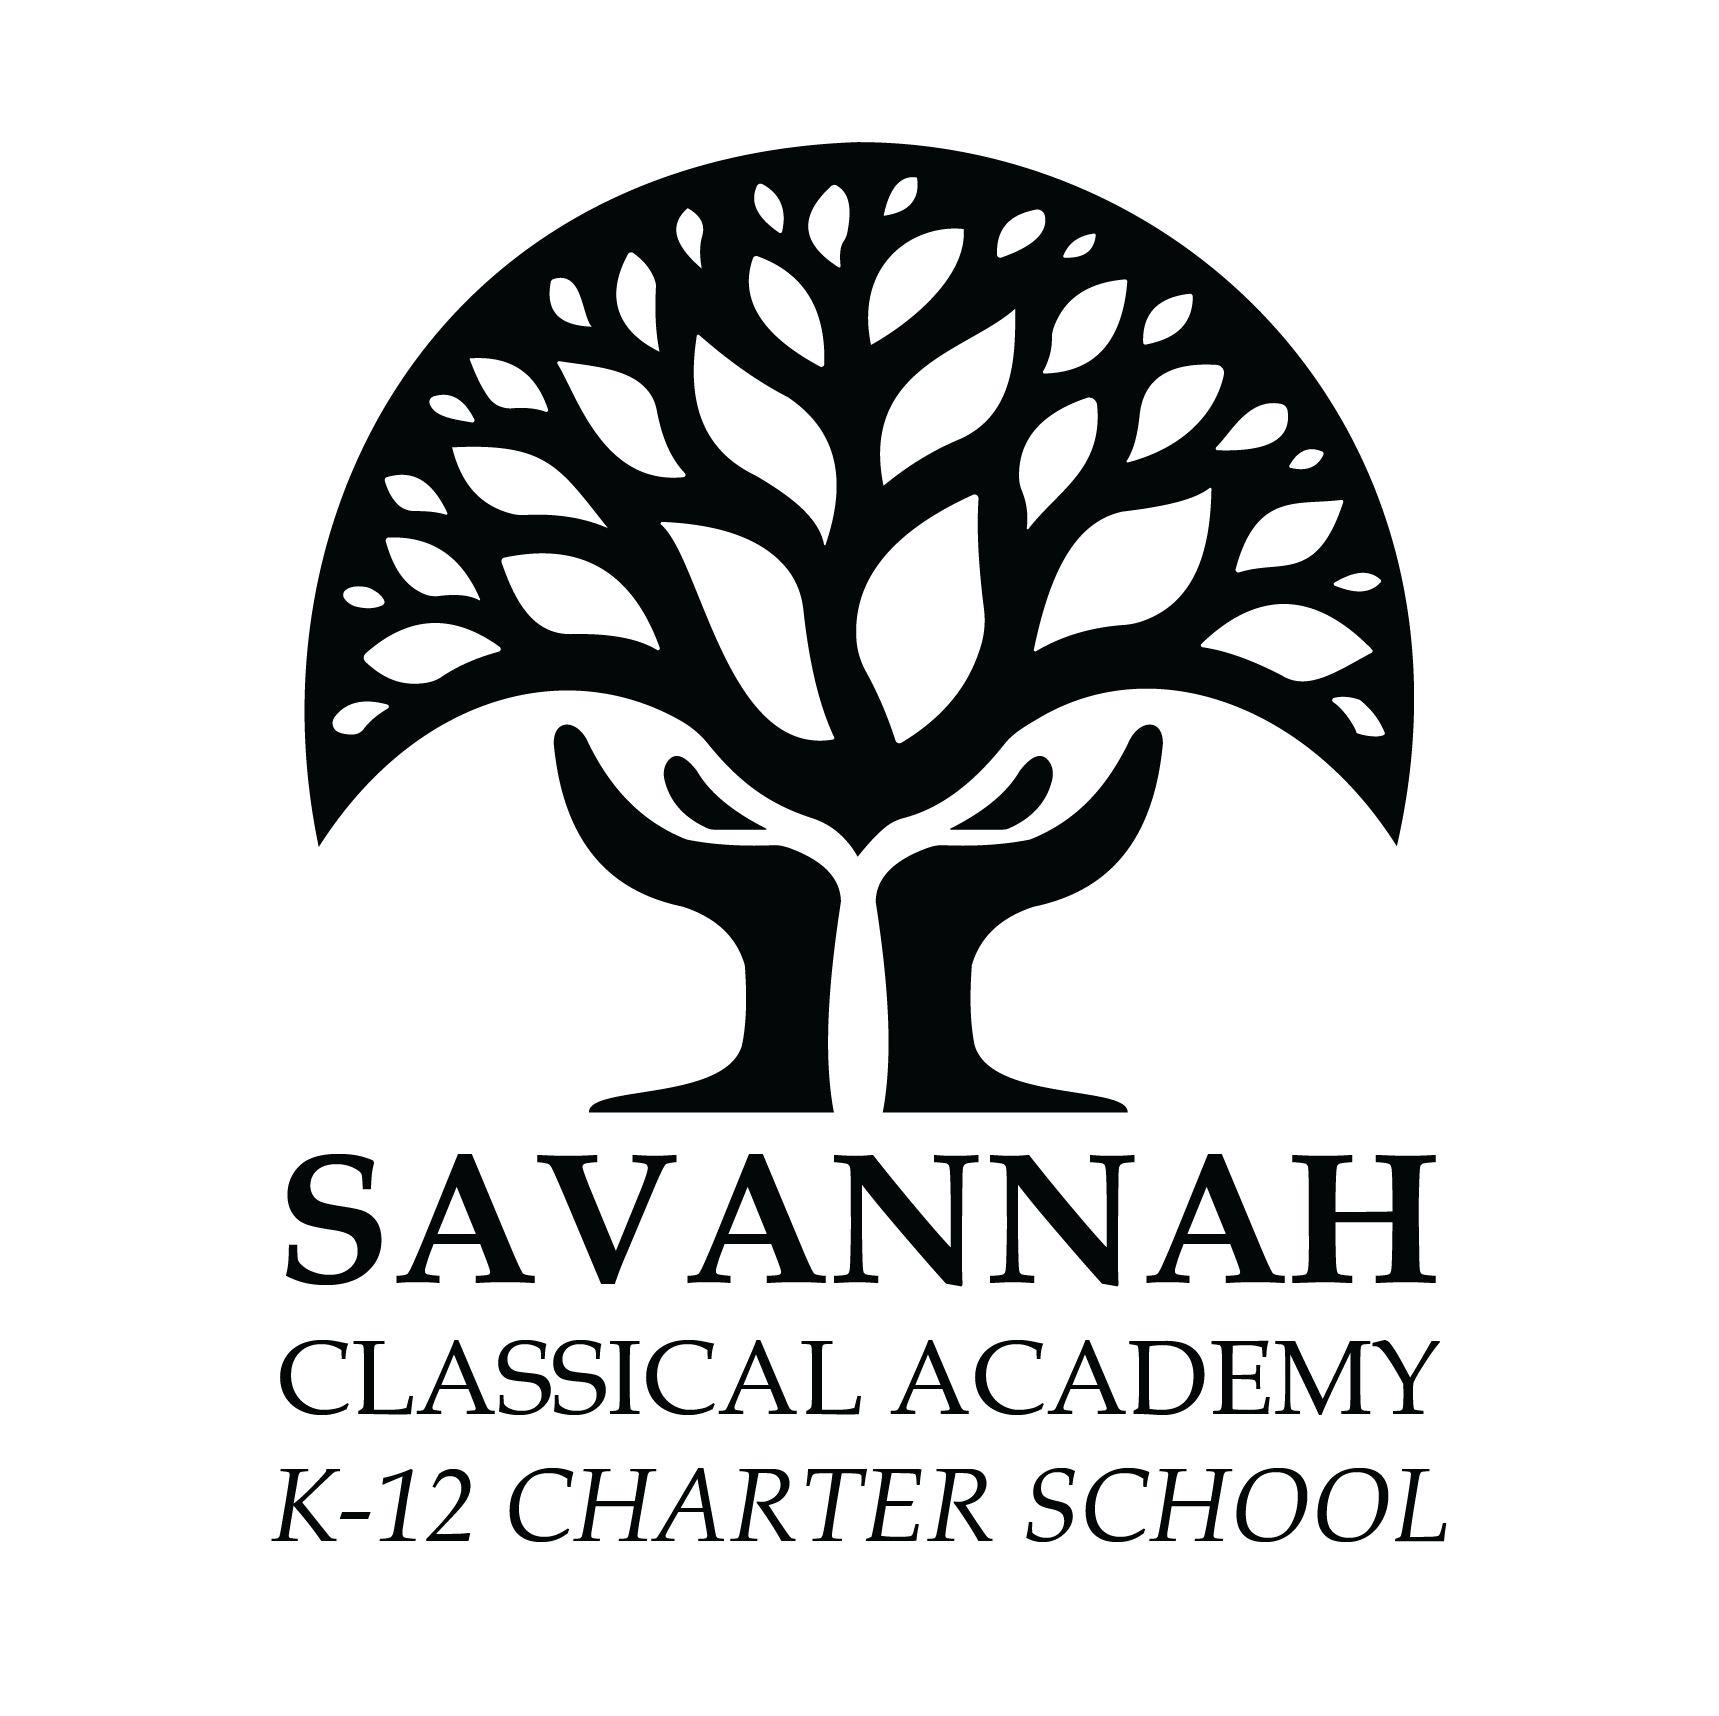 SAVANNAH CLASSICAL ACADEMY AND SOHO SOUTH CAFÉ TO PROVIDE STUDENT MEALS THIS WEEK